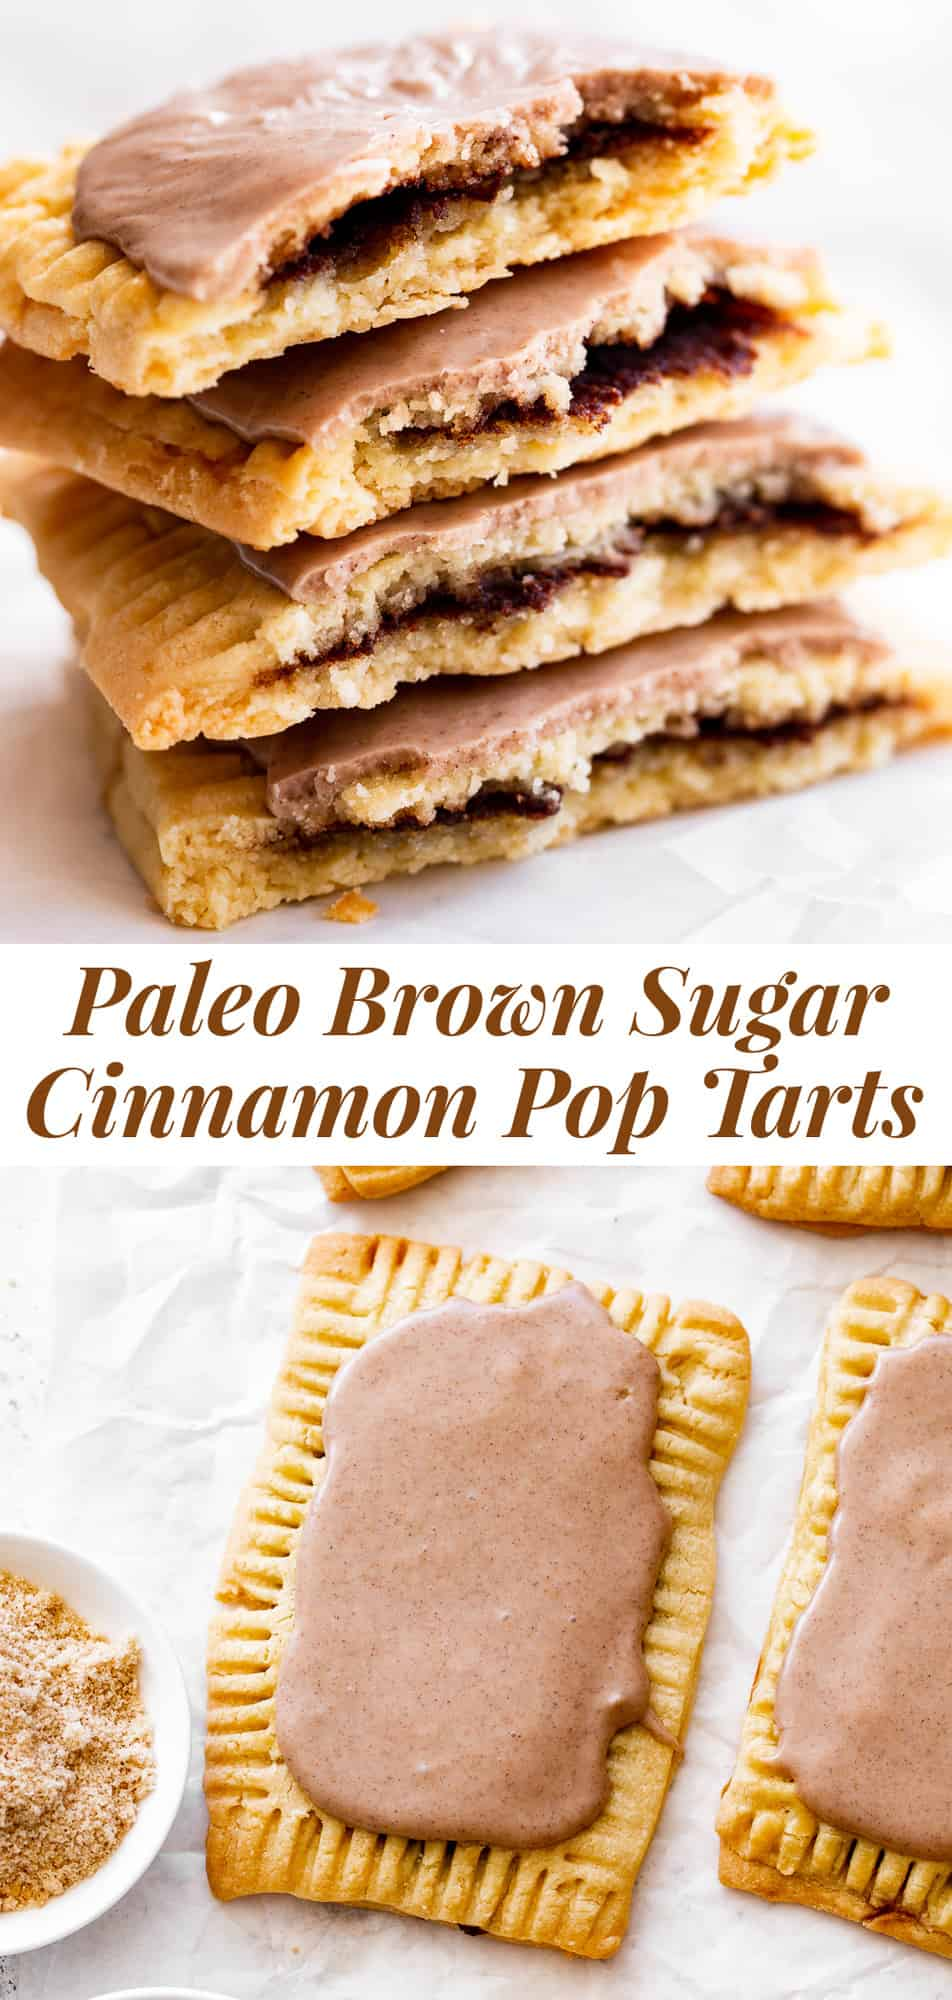 The ultimate healthier version of the absolute best nostalgic treat is here! These brown sugar cinnamon pop tarts taste so much like the originals but without any of the unhealthy ingredients! They're made gluten free and grain free with dairy free and paleo options. A fun from-scratch healthy baking project for kids to help with. #paleo #paleobaking #paleotreats #glutenfree #glutenfreebaking #healthybaking